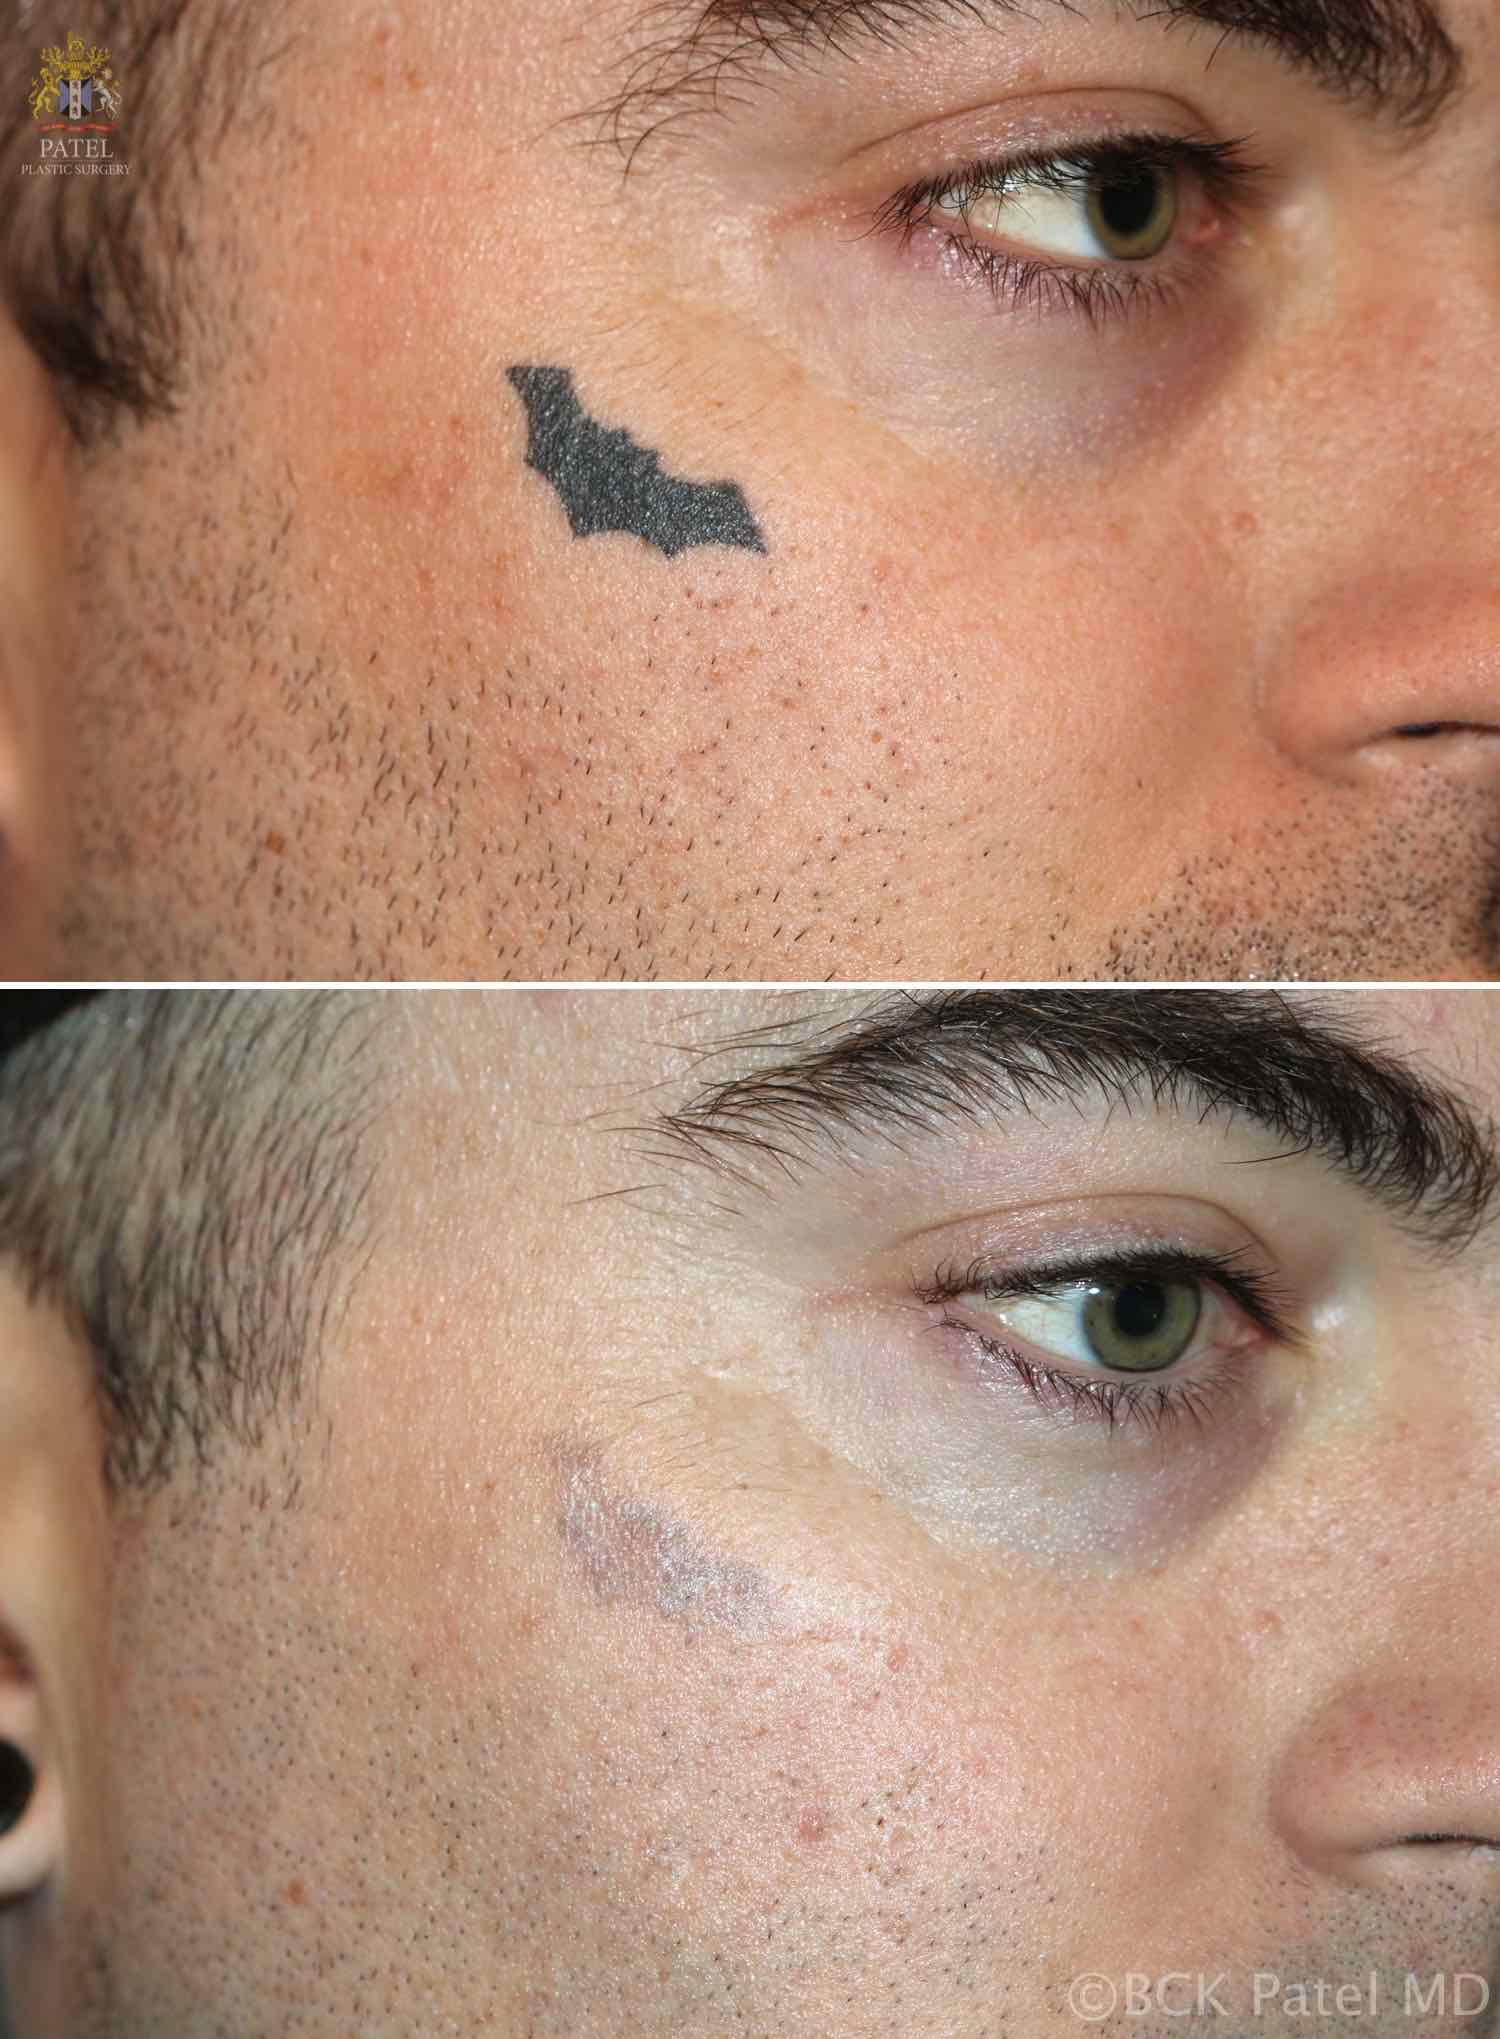 englishsurgeon.com. Photos showing removal of face dark tattoo with the laser. BCK Patel MD, FRCS, Salt Lake City, Utah, St. George